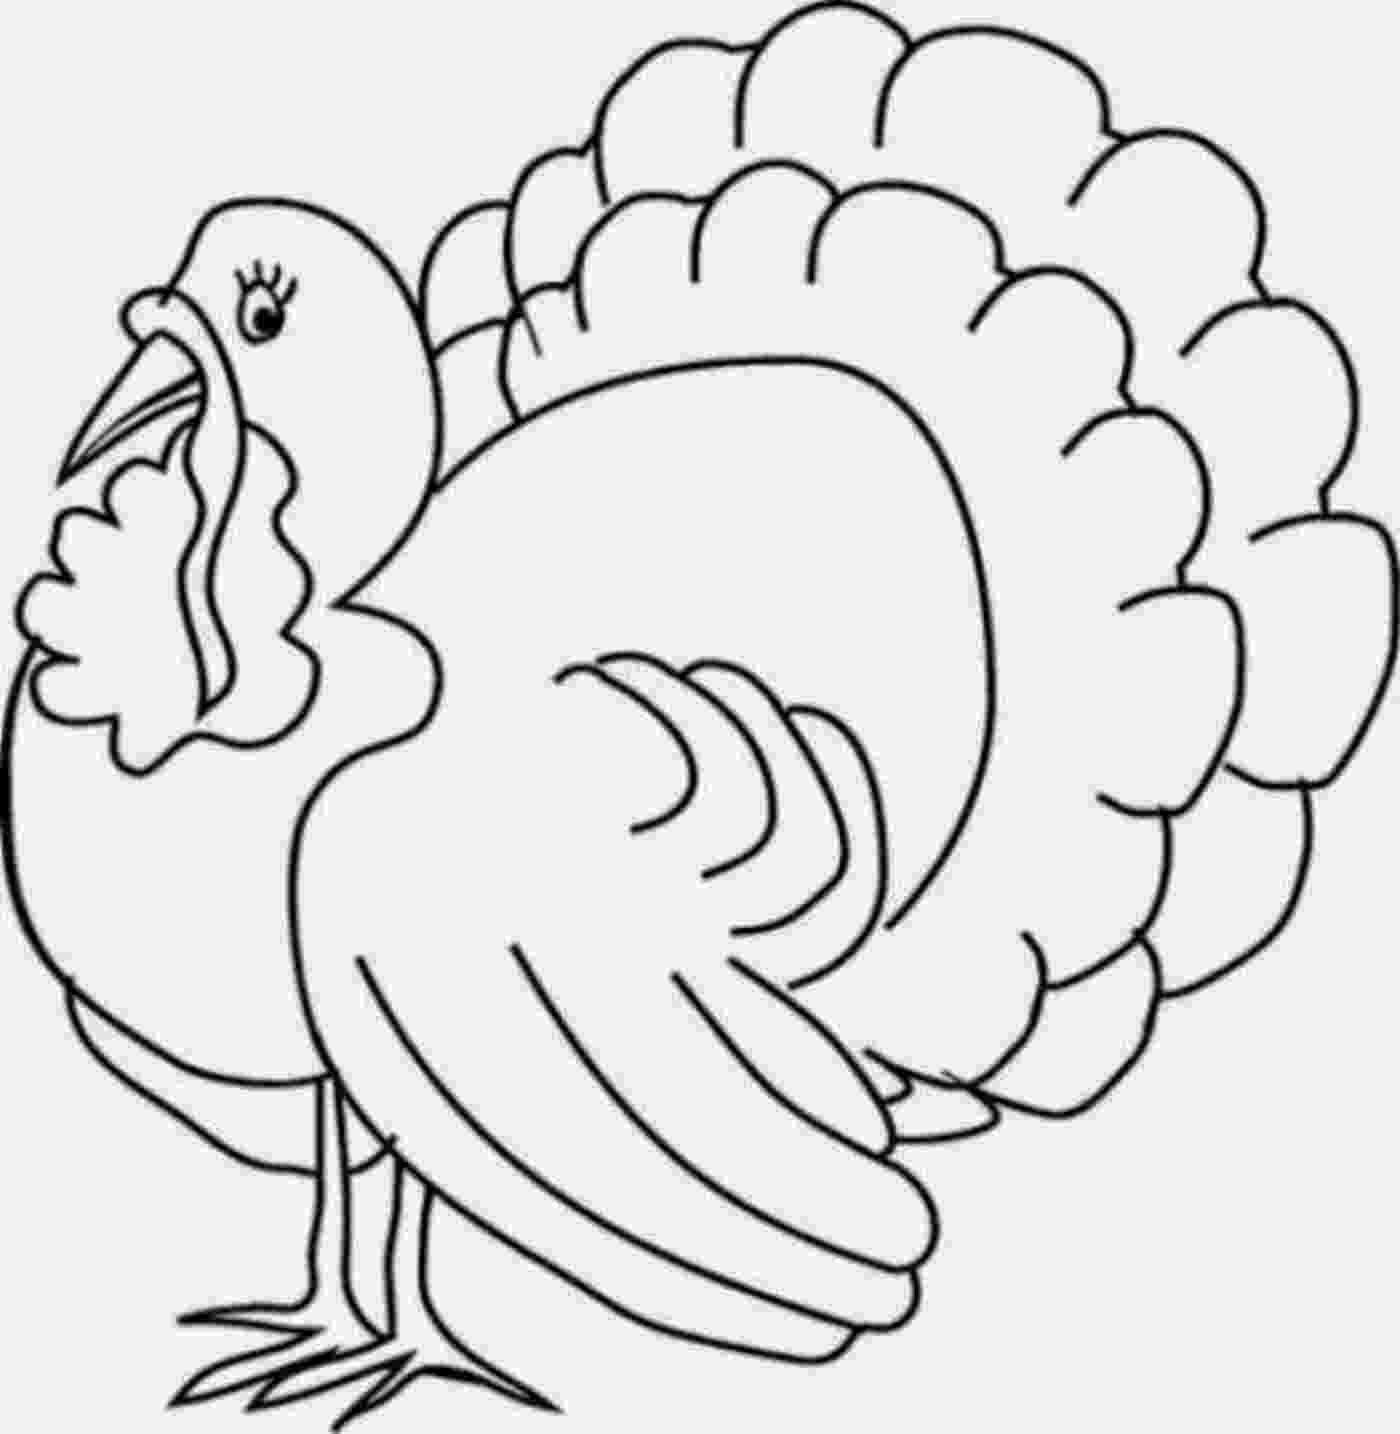 thanksgiving turkey coloring page pippi39s blog thanksgiving turkey page coloring turkey thanksgiving